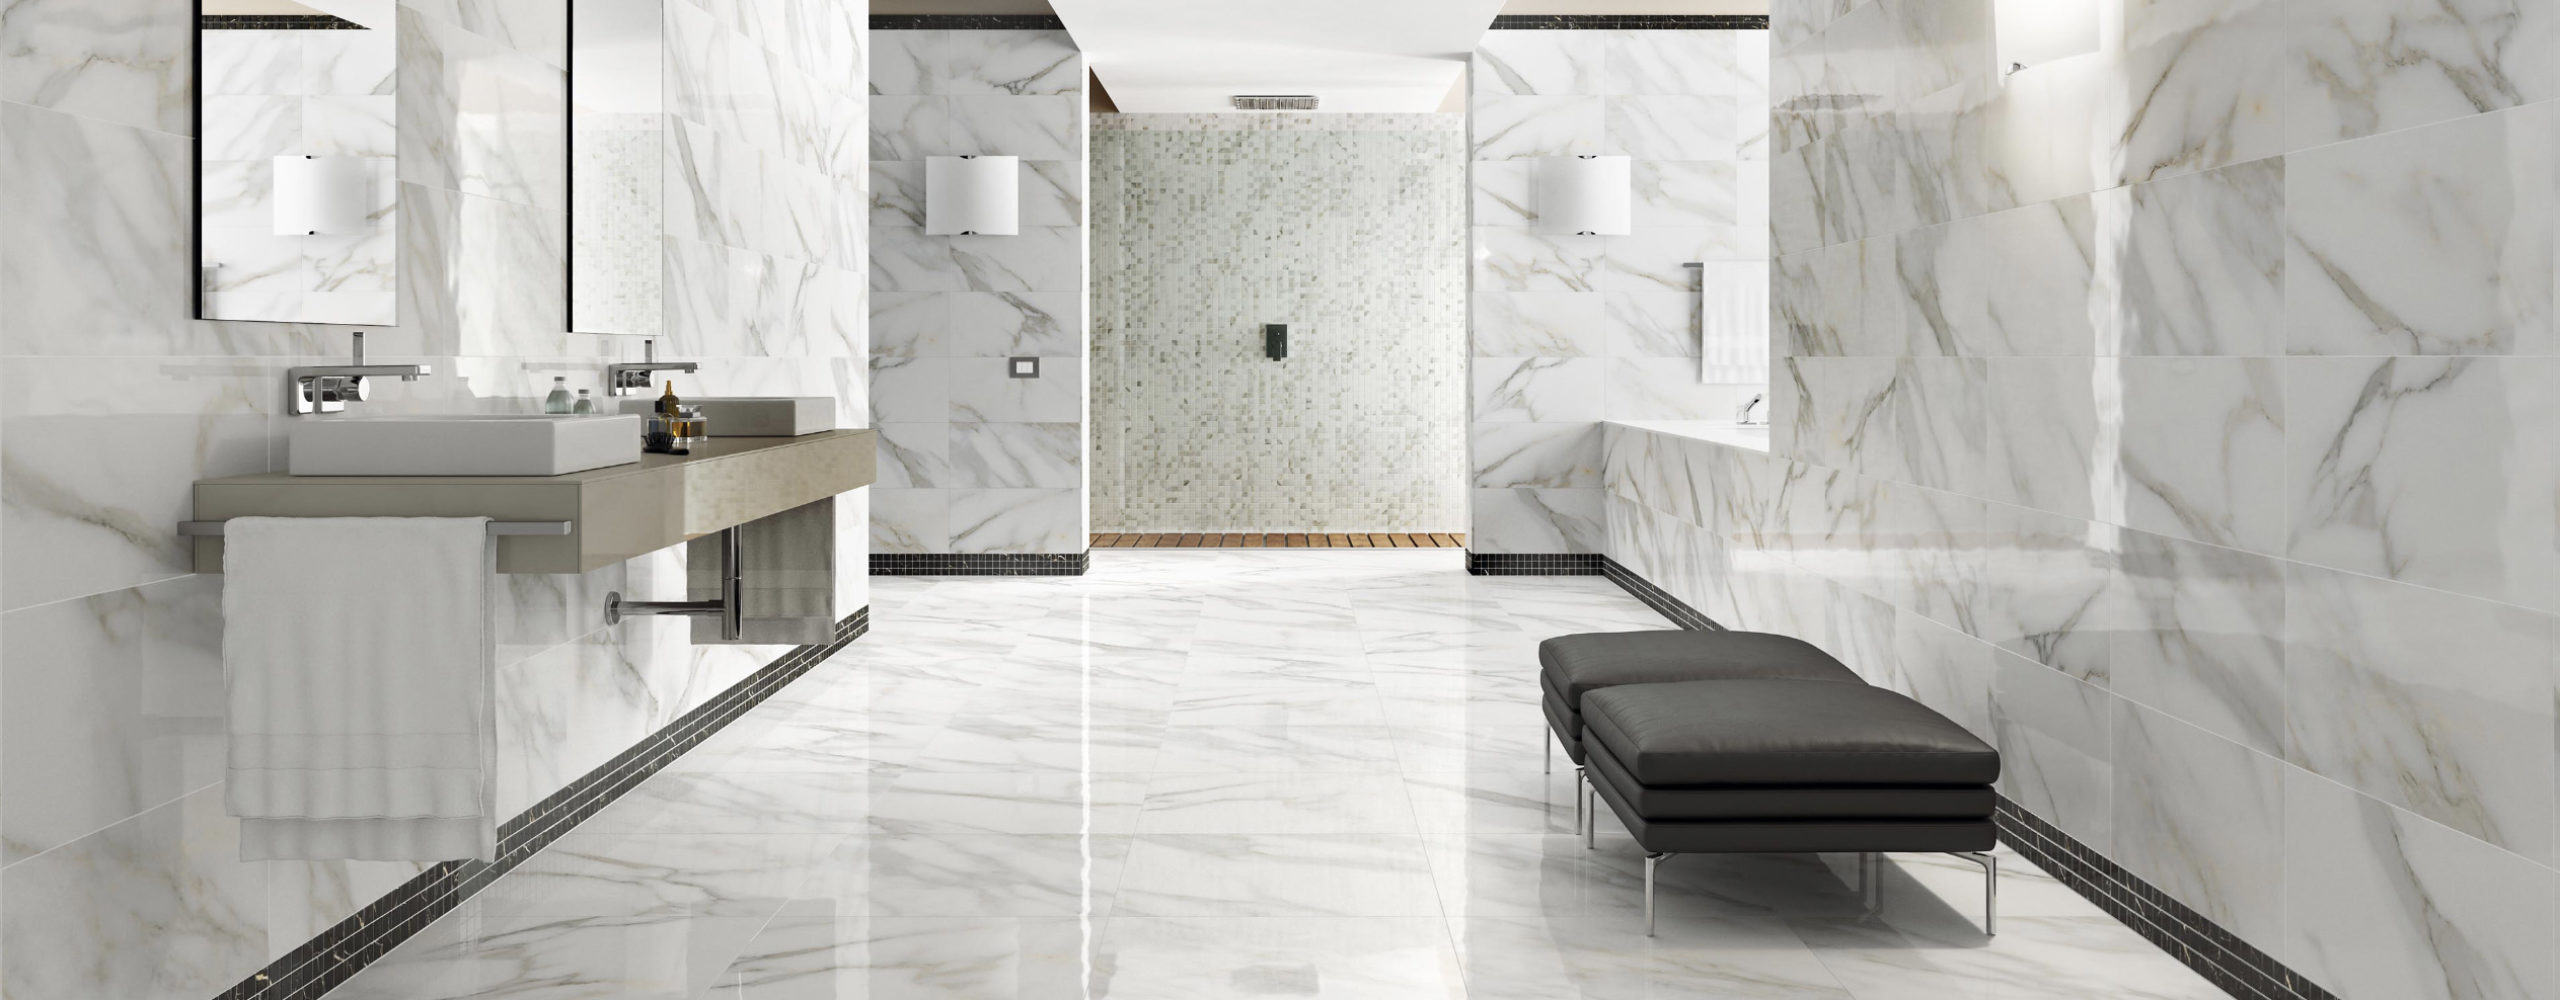 dyna marble price india